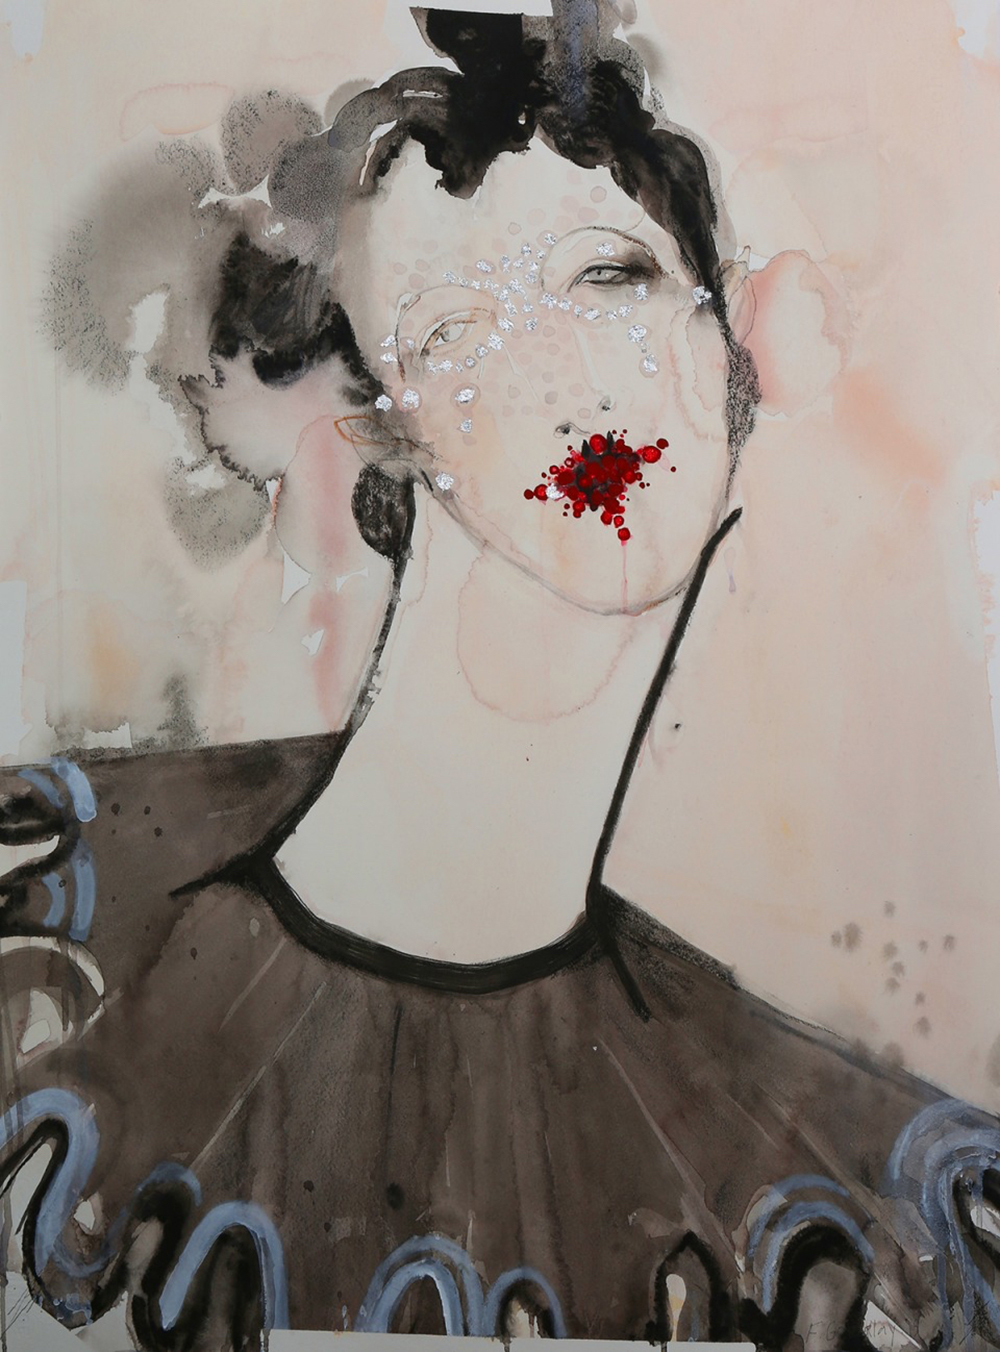 BA (Hons) Fashion Illustration alumna Fiona Gourlay collaborated with SHOWstudio for a project called: A Beautiful Darkness - Widow Series. Image Credit: Fiona Gourlay